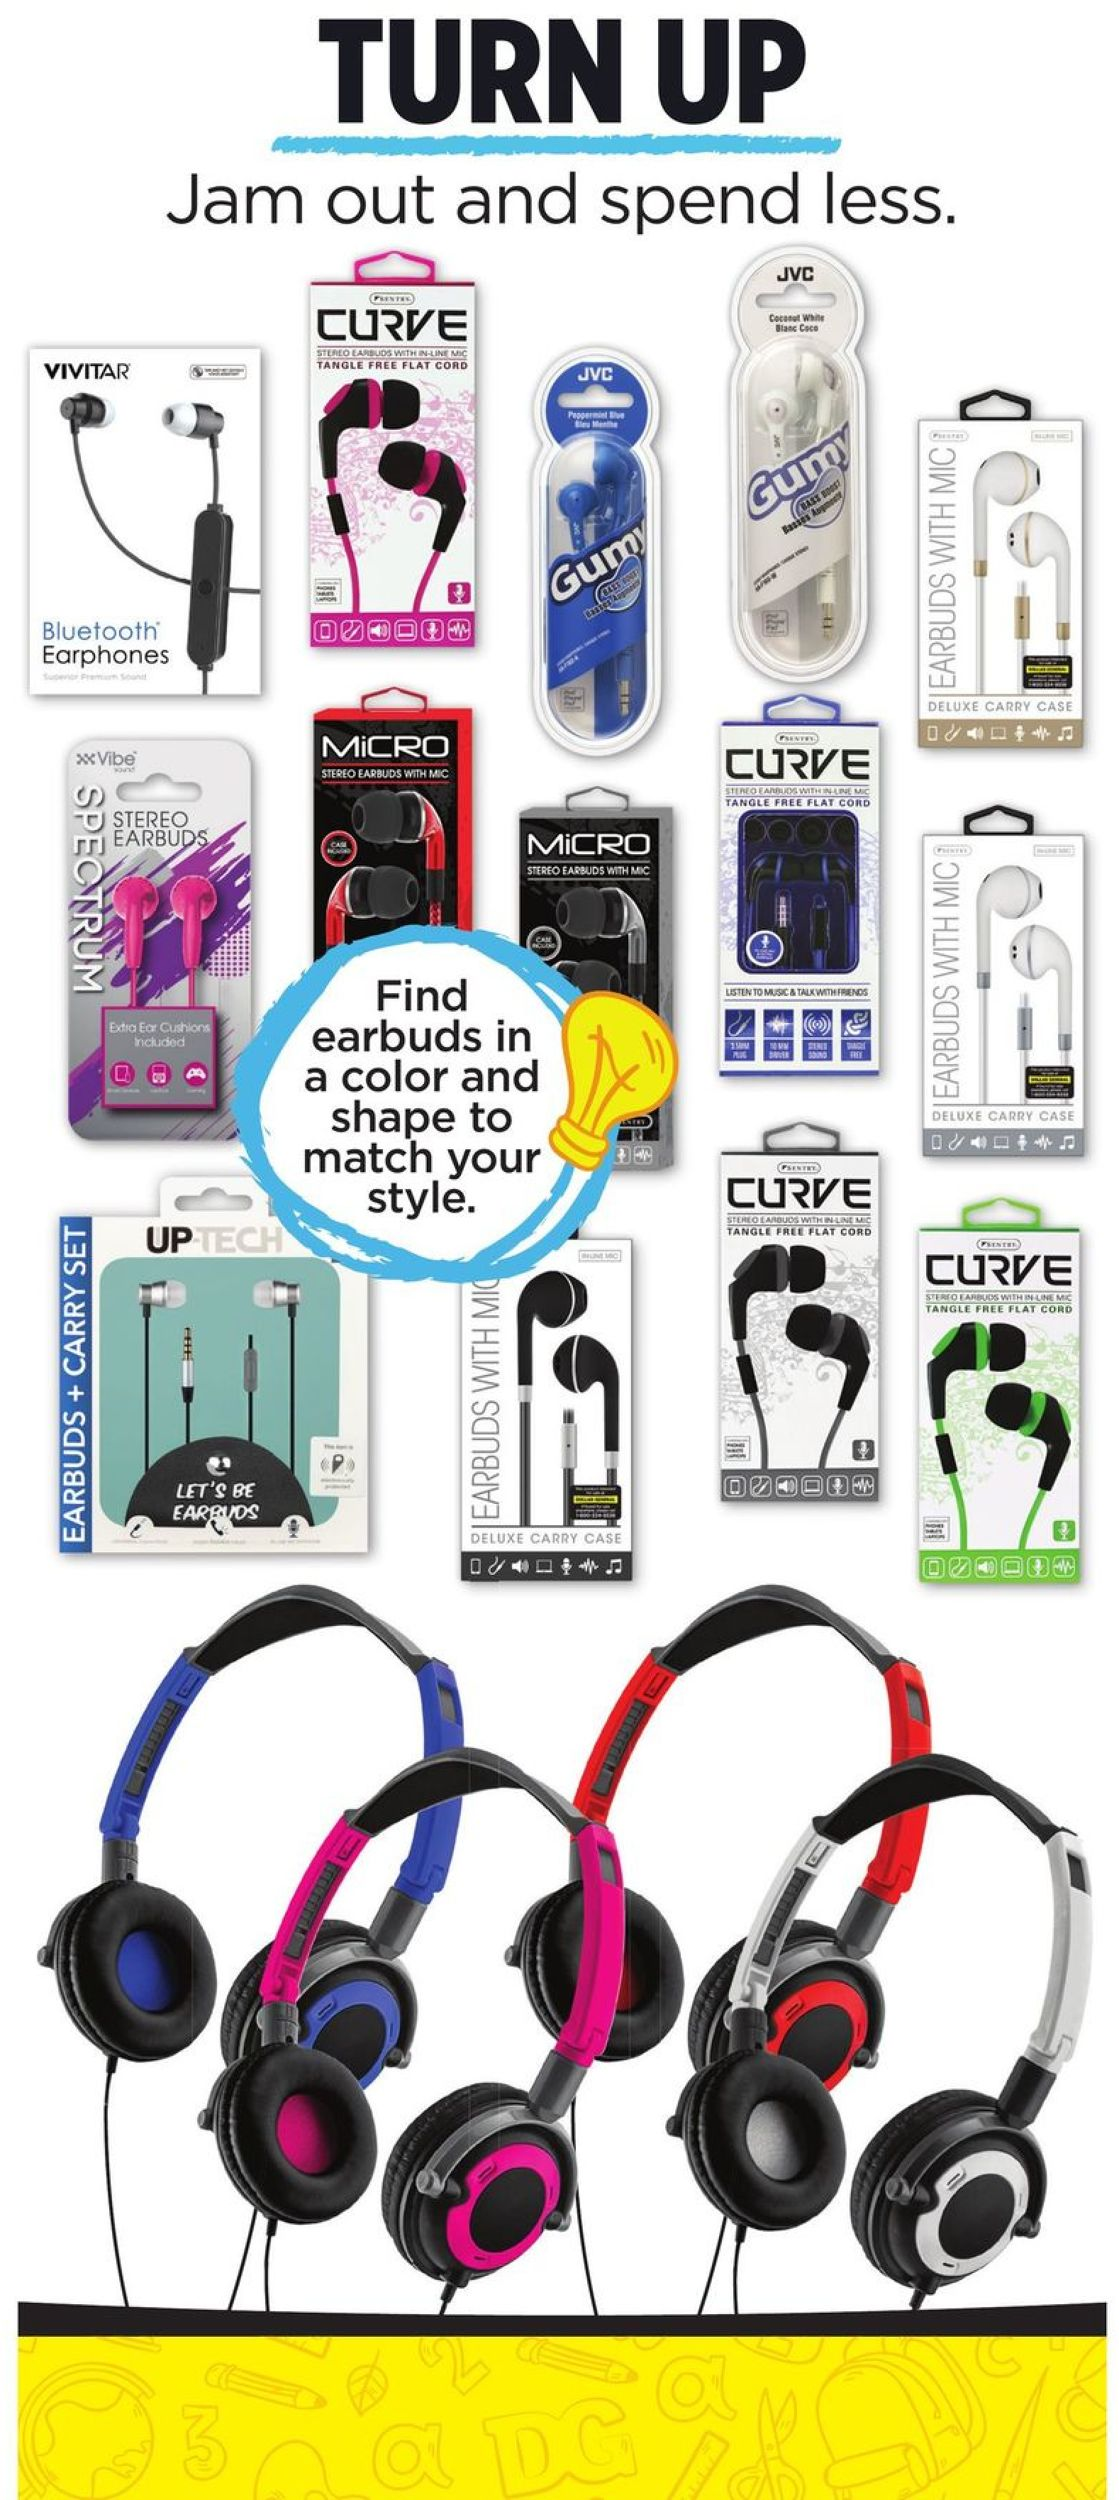 Dollar General Earbuds With Mic : dollar, general, earbuds, Dollar, General, Current, Weekly, 07/07, 09/03/2019, Frequent-ads.com